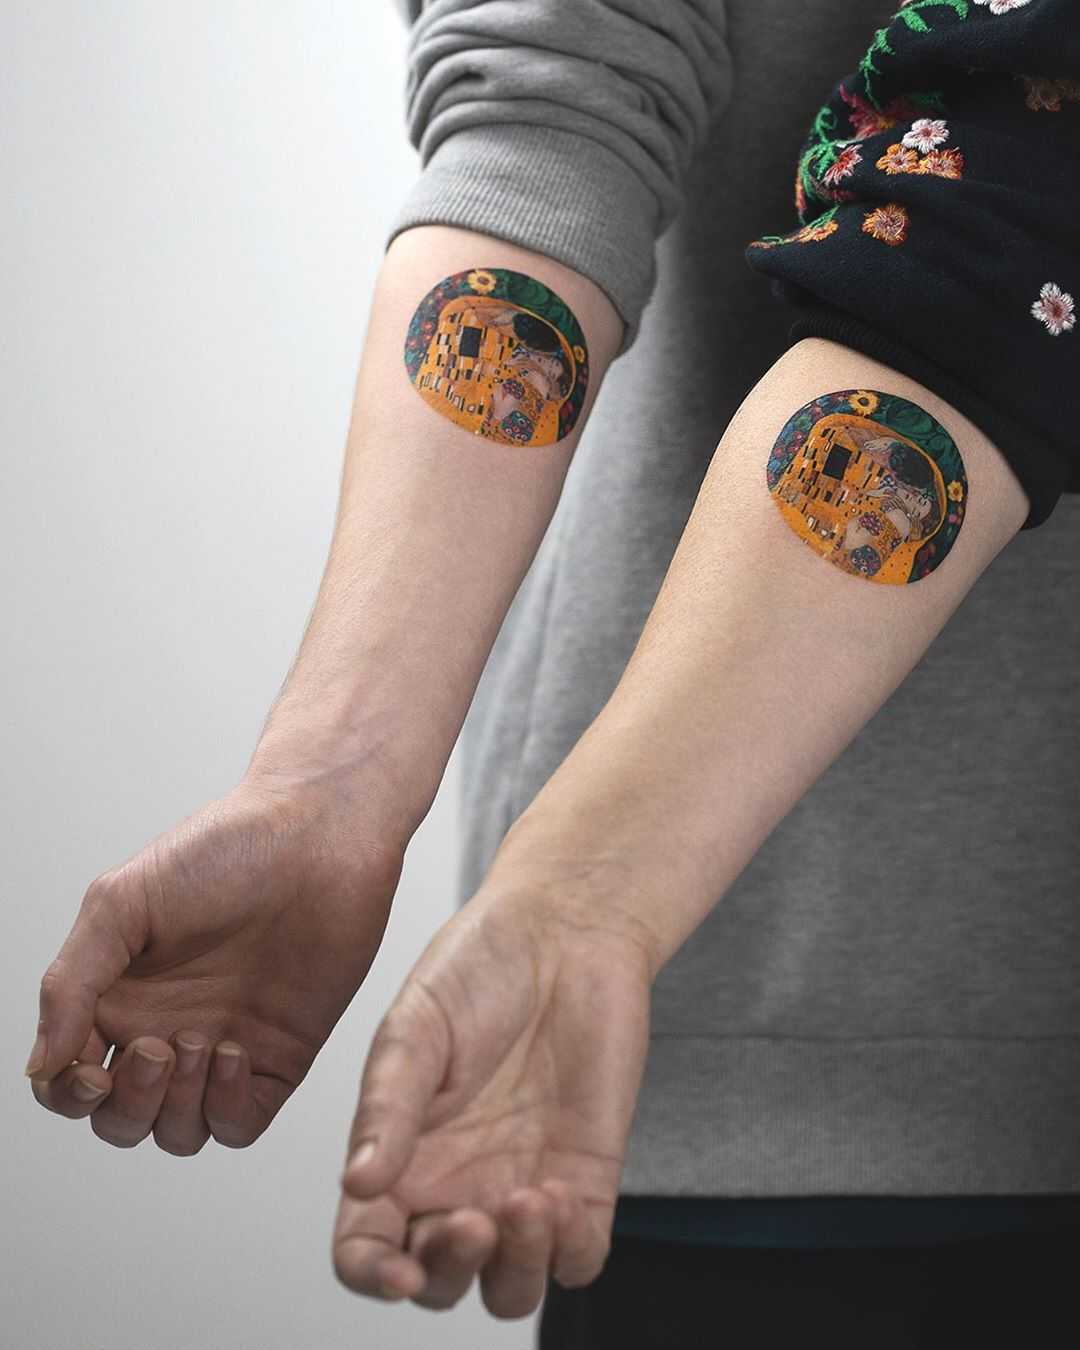 Klimt's matching tattoos by Rey Jasper